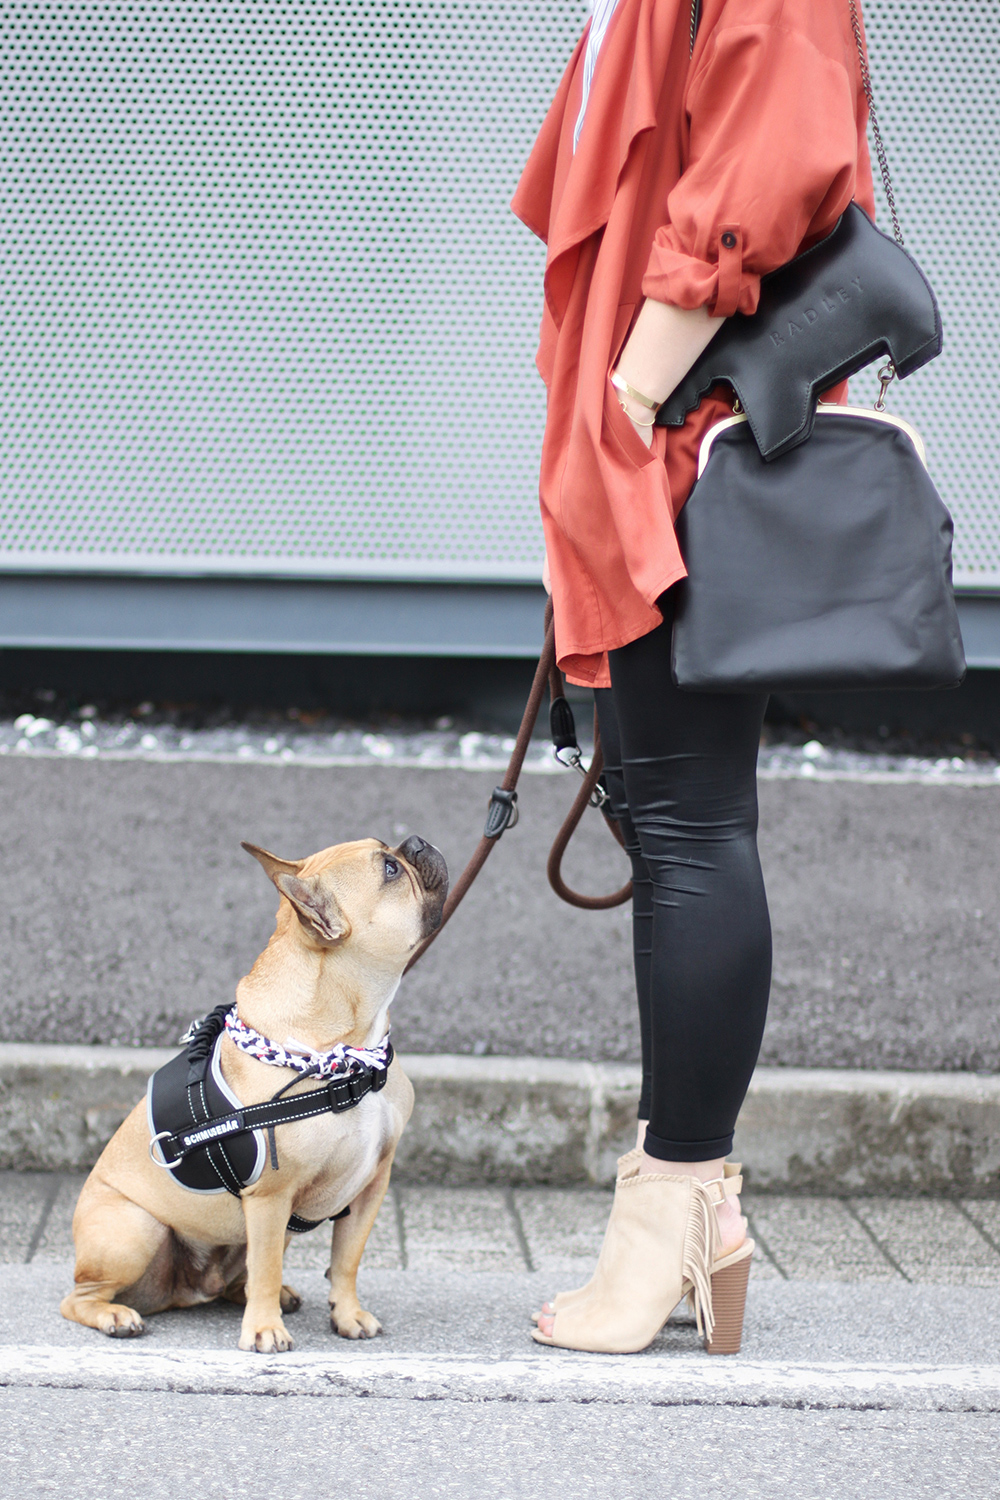 who is mocca, modeblog, fashionblog, german blogger, austrian blogger, marsala trench coat, frenchie, justfab booties, fringe boots, marsala trendfarbe 2015 kombinieren, innsbruck dez streetstyle, radley london dog bag, whoismocca.com